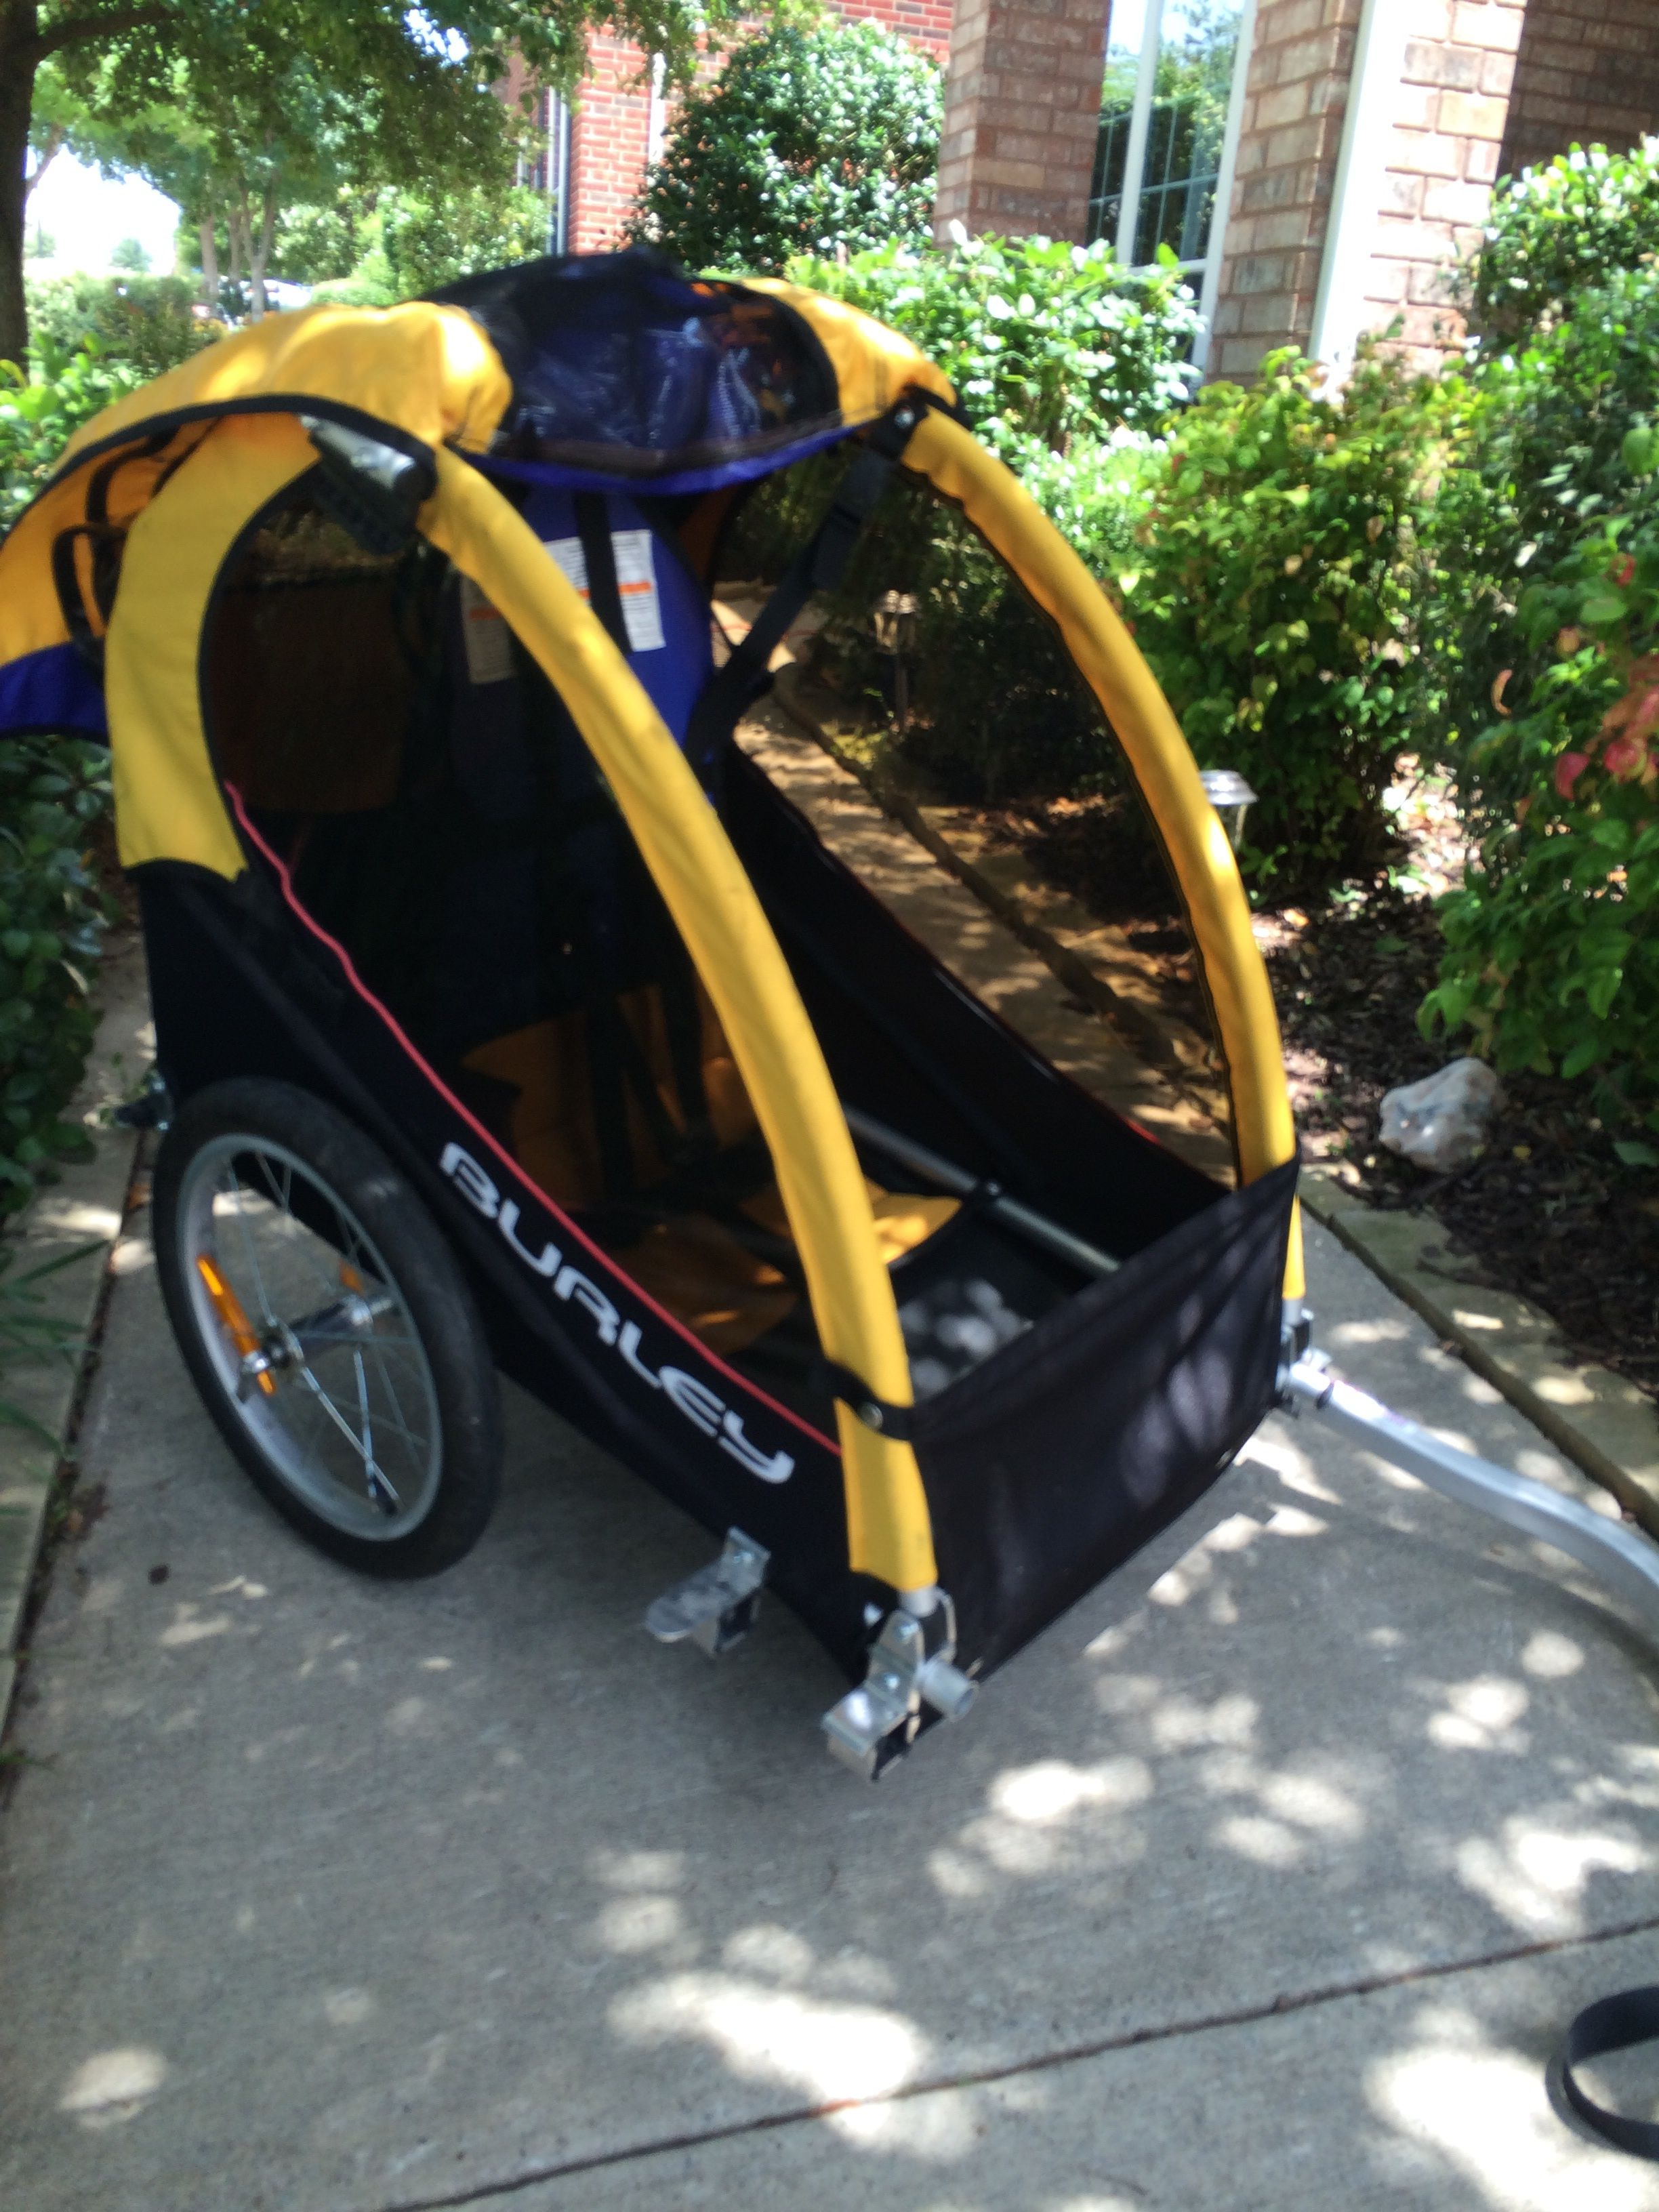 Burley Bike Trailer Solo In Amberbaity S Garage Sale Mckinney Tx Bike Trailer Trailers For Sale Garage Sales